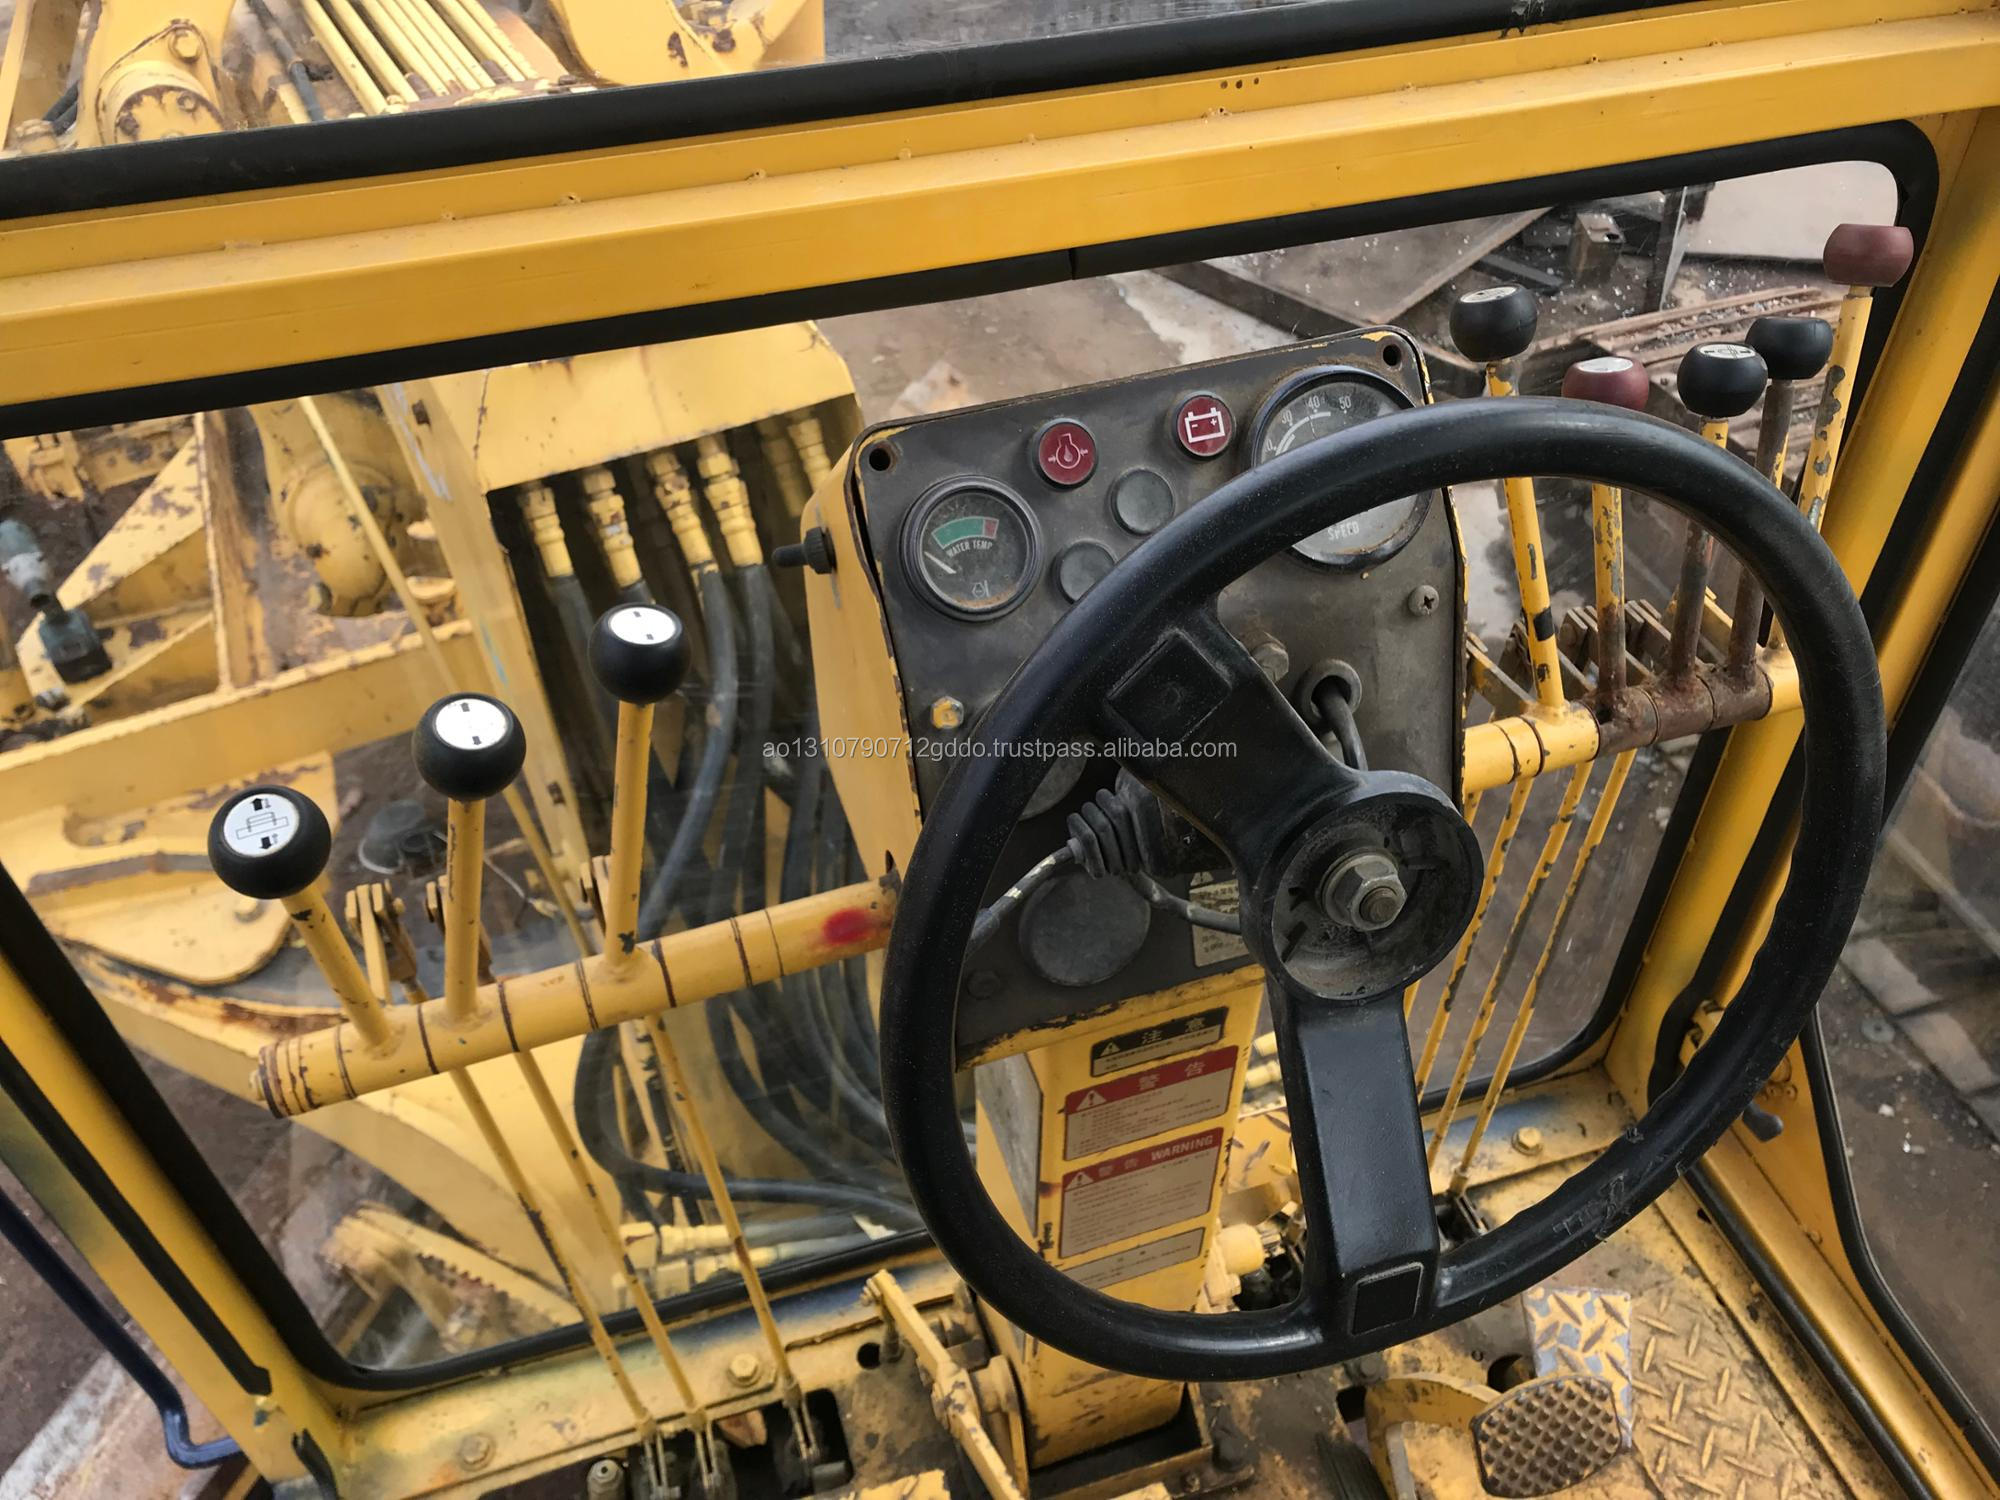 Used KOMATSU GD623-A2 Motor Grader For Sale/Used KOMATSU GD623 Motor Grader Used KOMATSU GD623 Grader in Good Condition